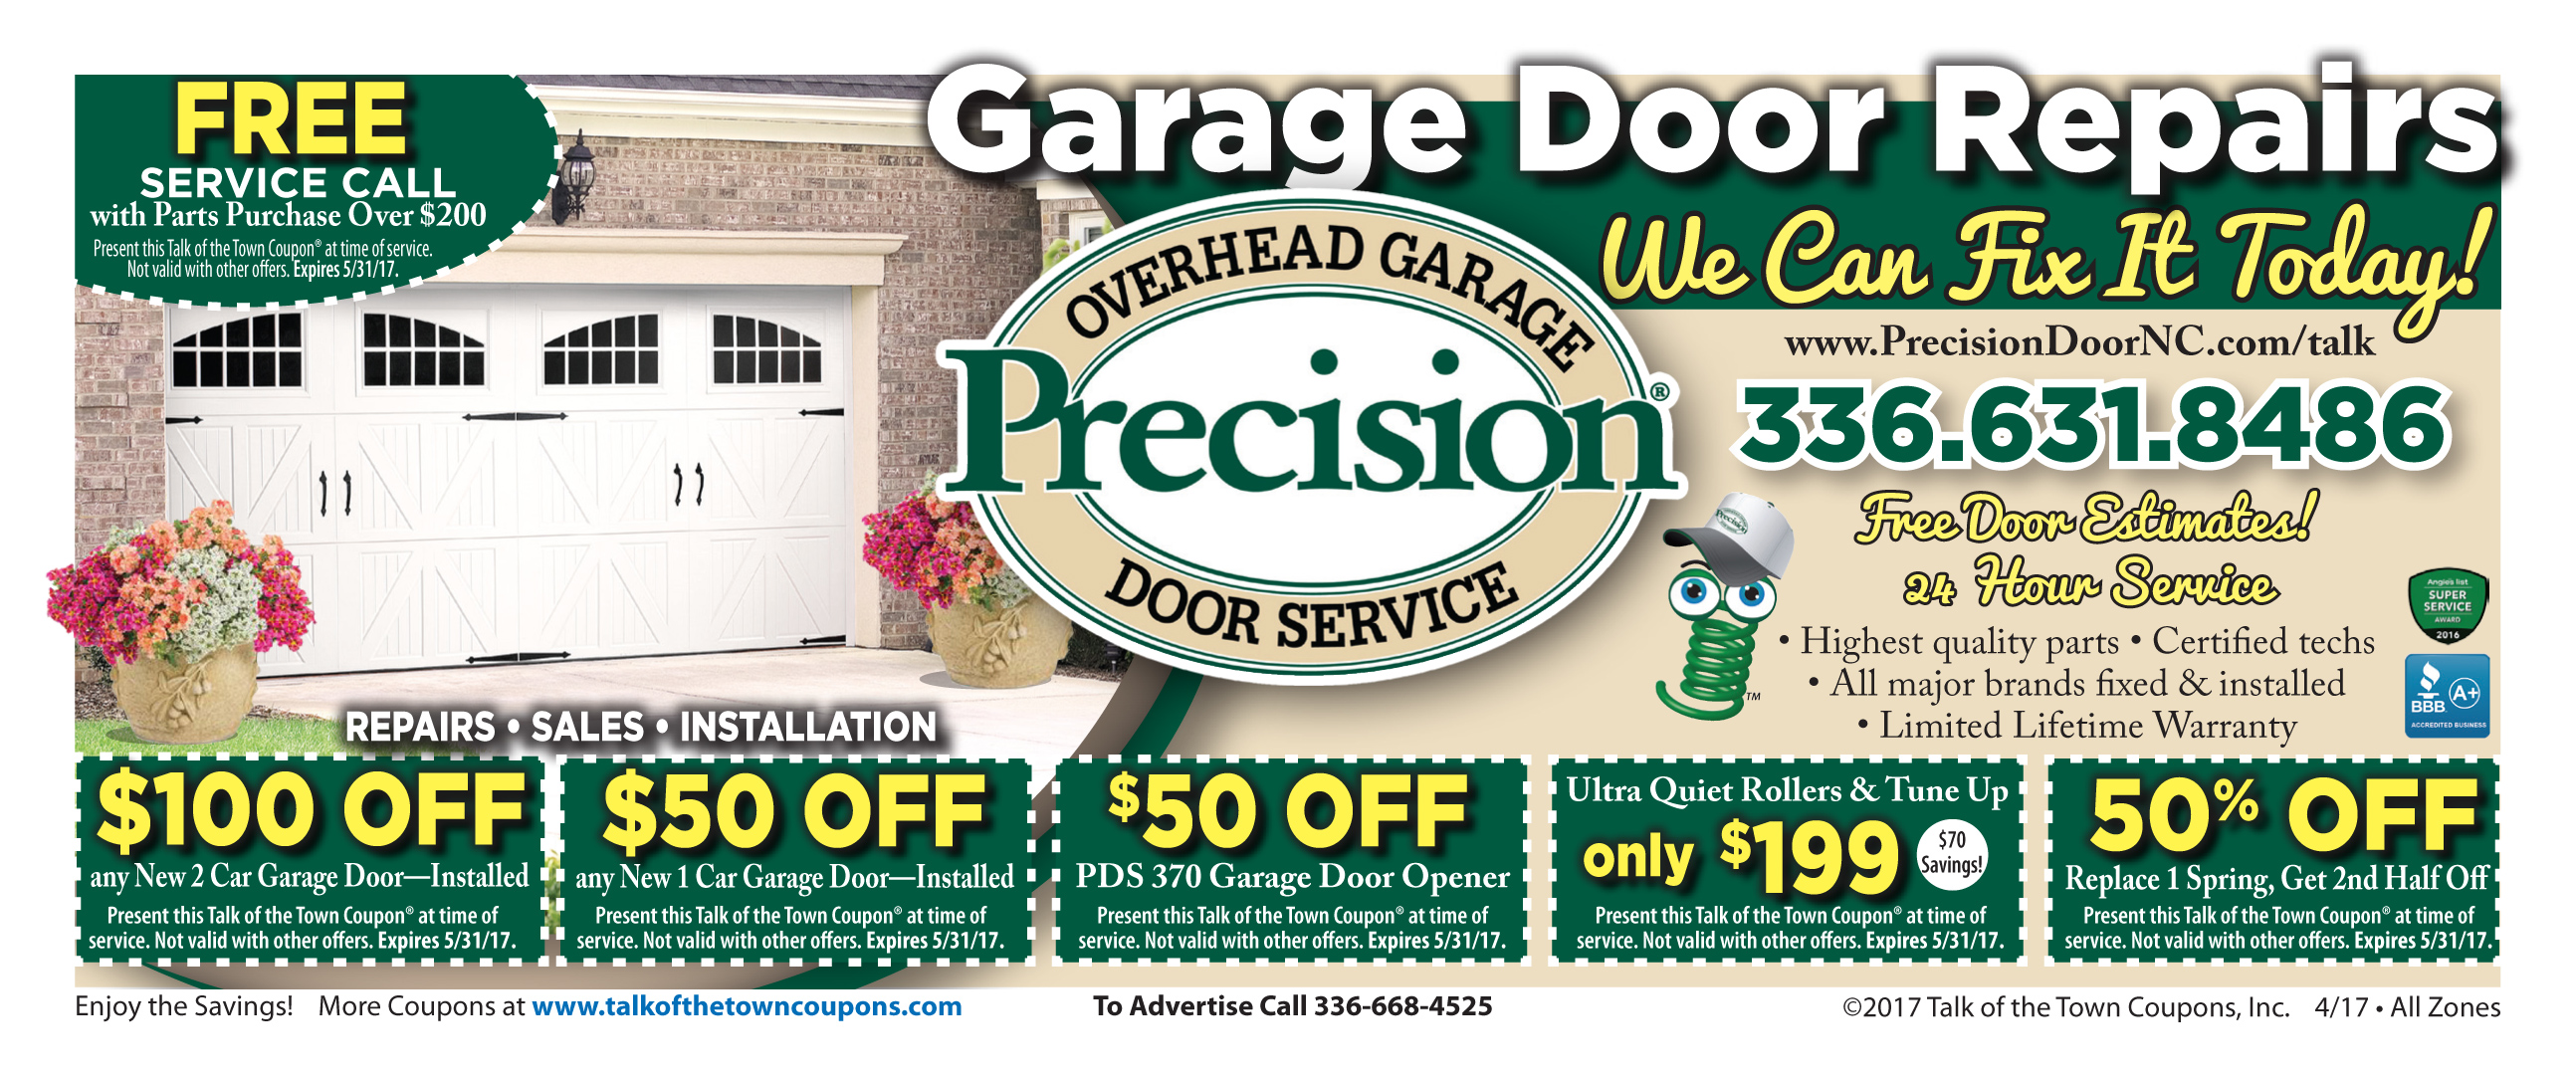 overhead doors electric reviews imageoncept p door roller garage precision fantastic service